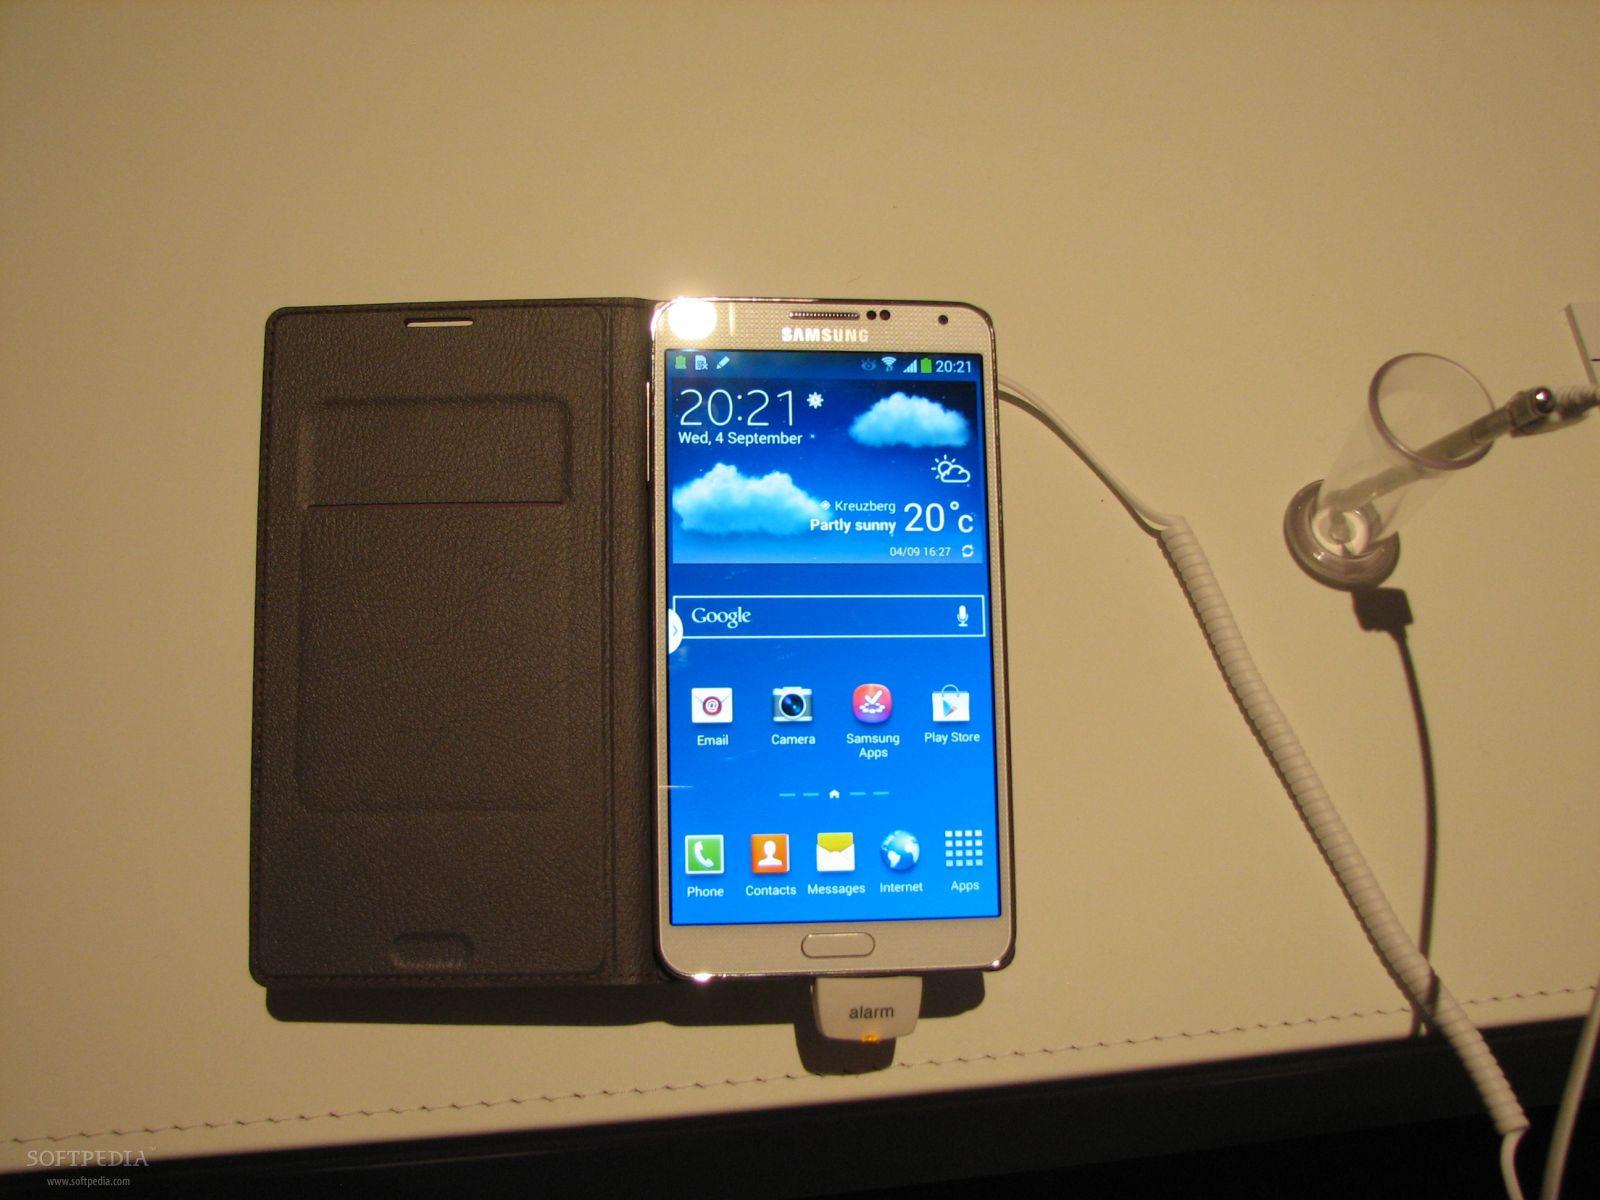 samsung reportedly kicks off galaxy note 3 lite mass production softpedia. Black Bedroom Furniture Sets. Home Design Ideas